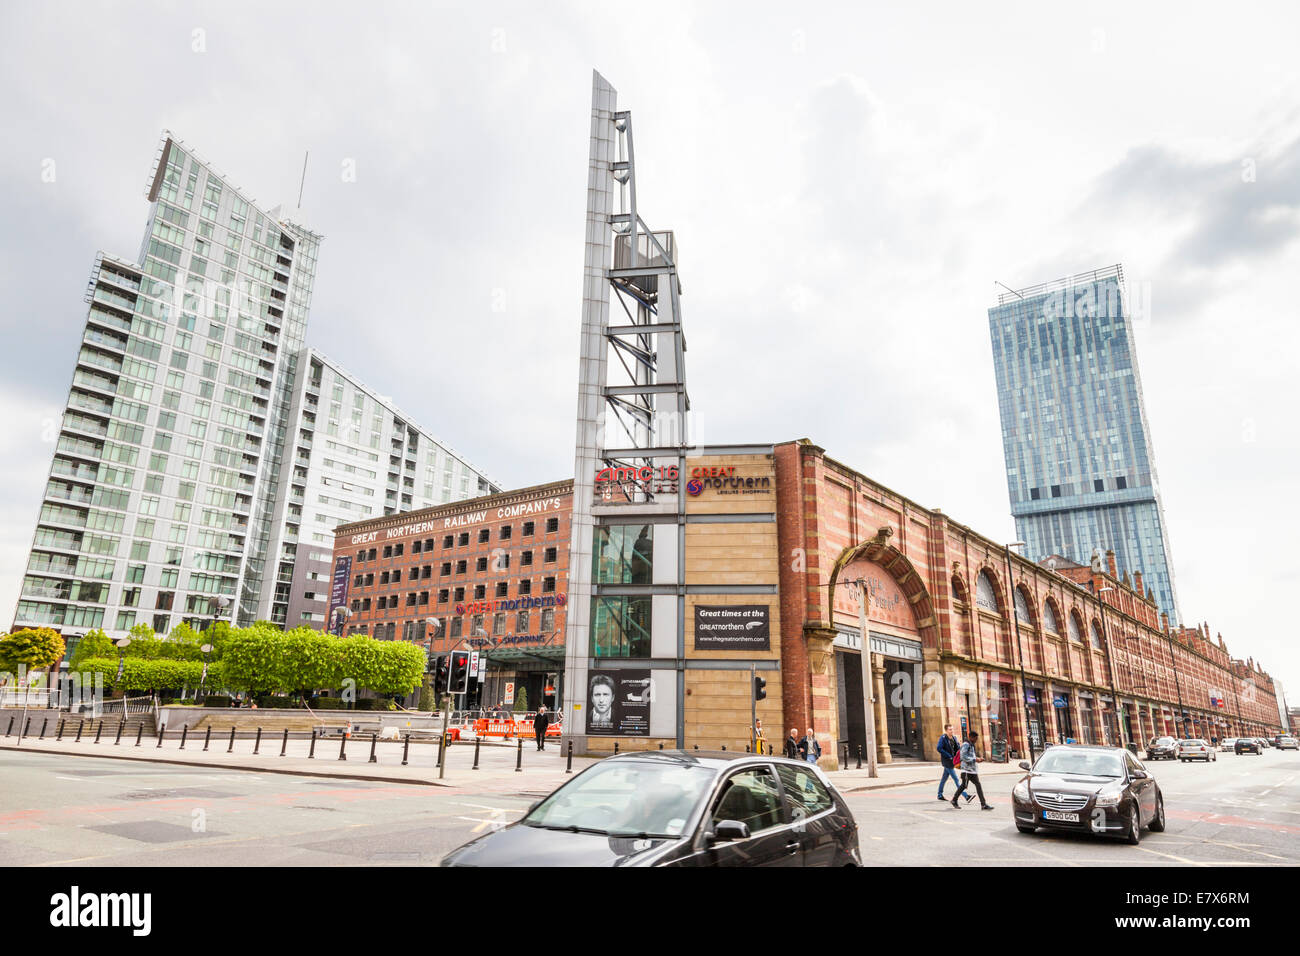 Great Northern, a shopping and leisure centre, with Windmill Street Tower and Beetham Tower behind, Deansgate, Manchester, Stock Photo